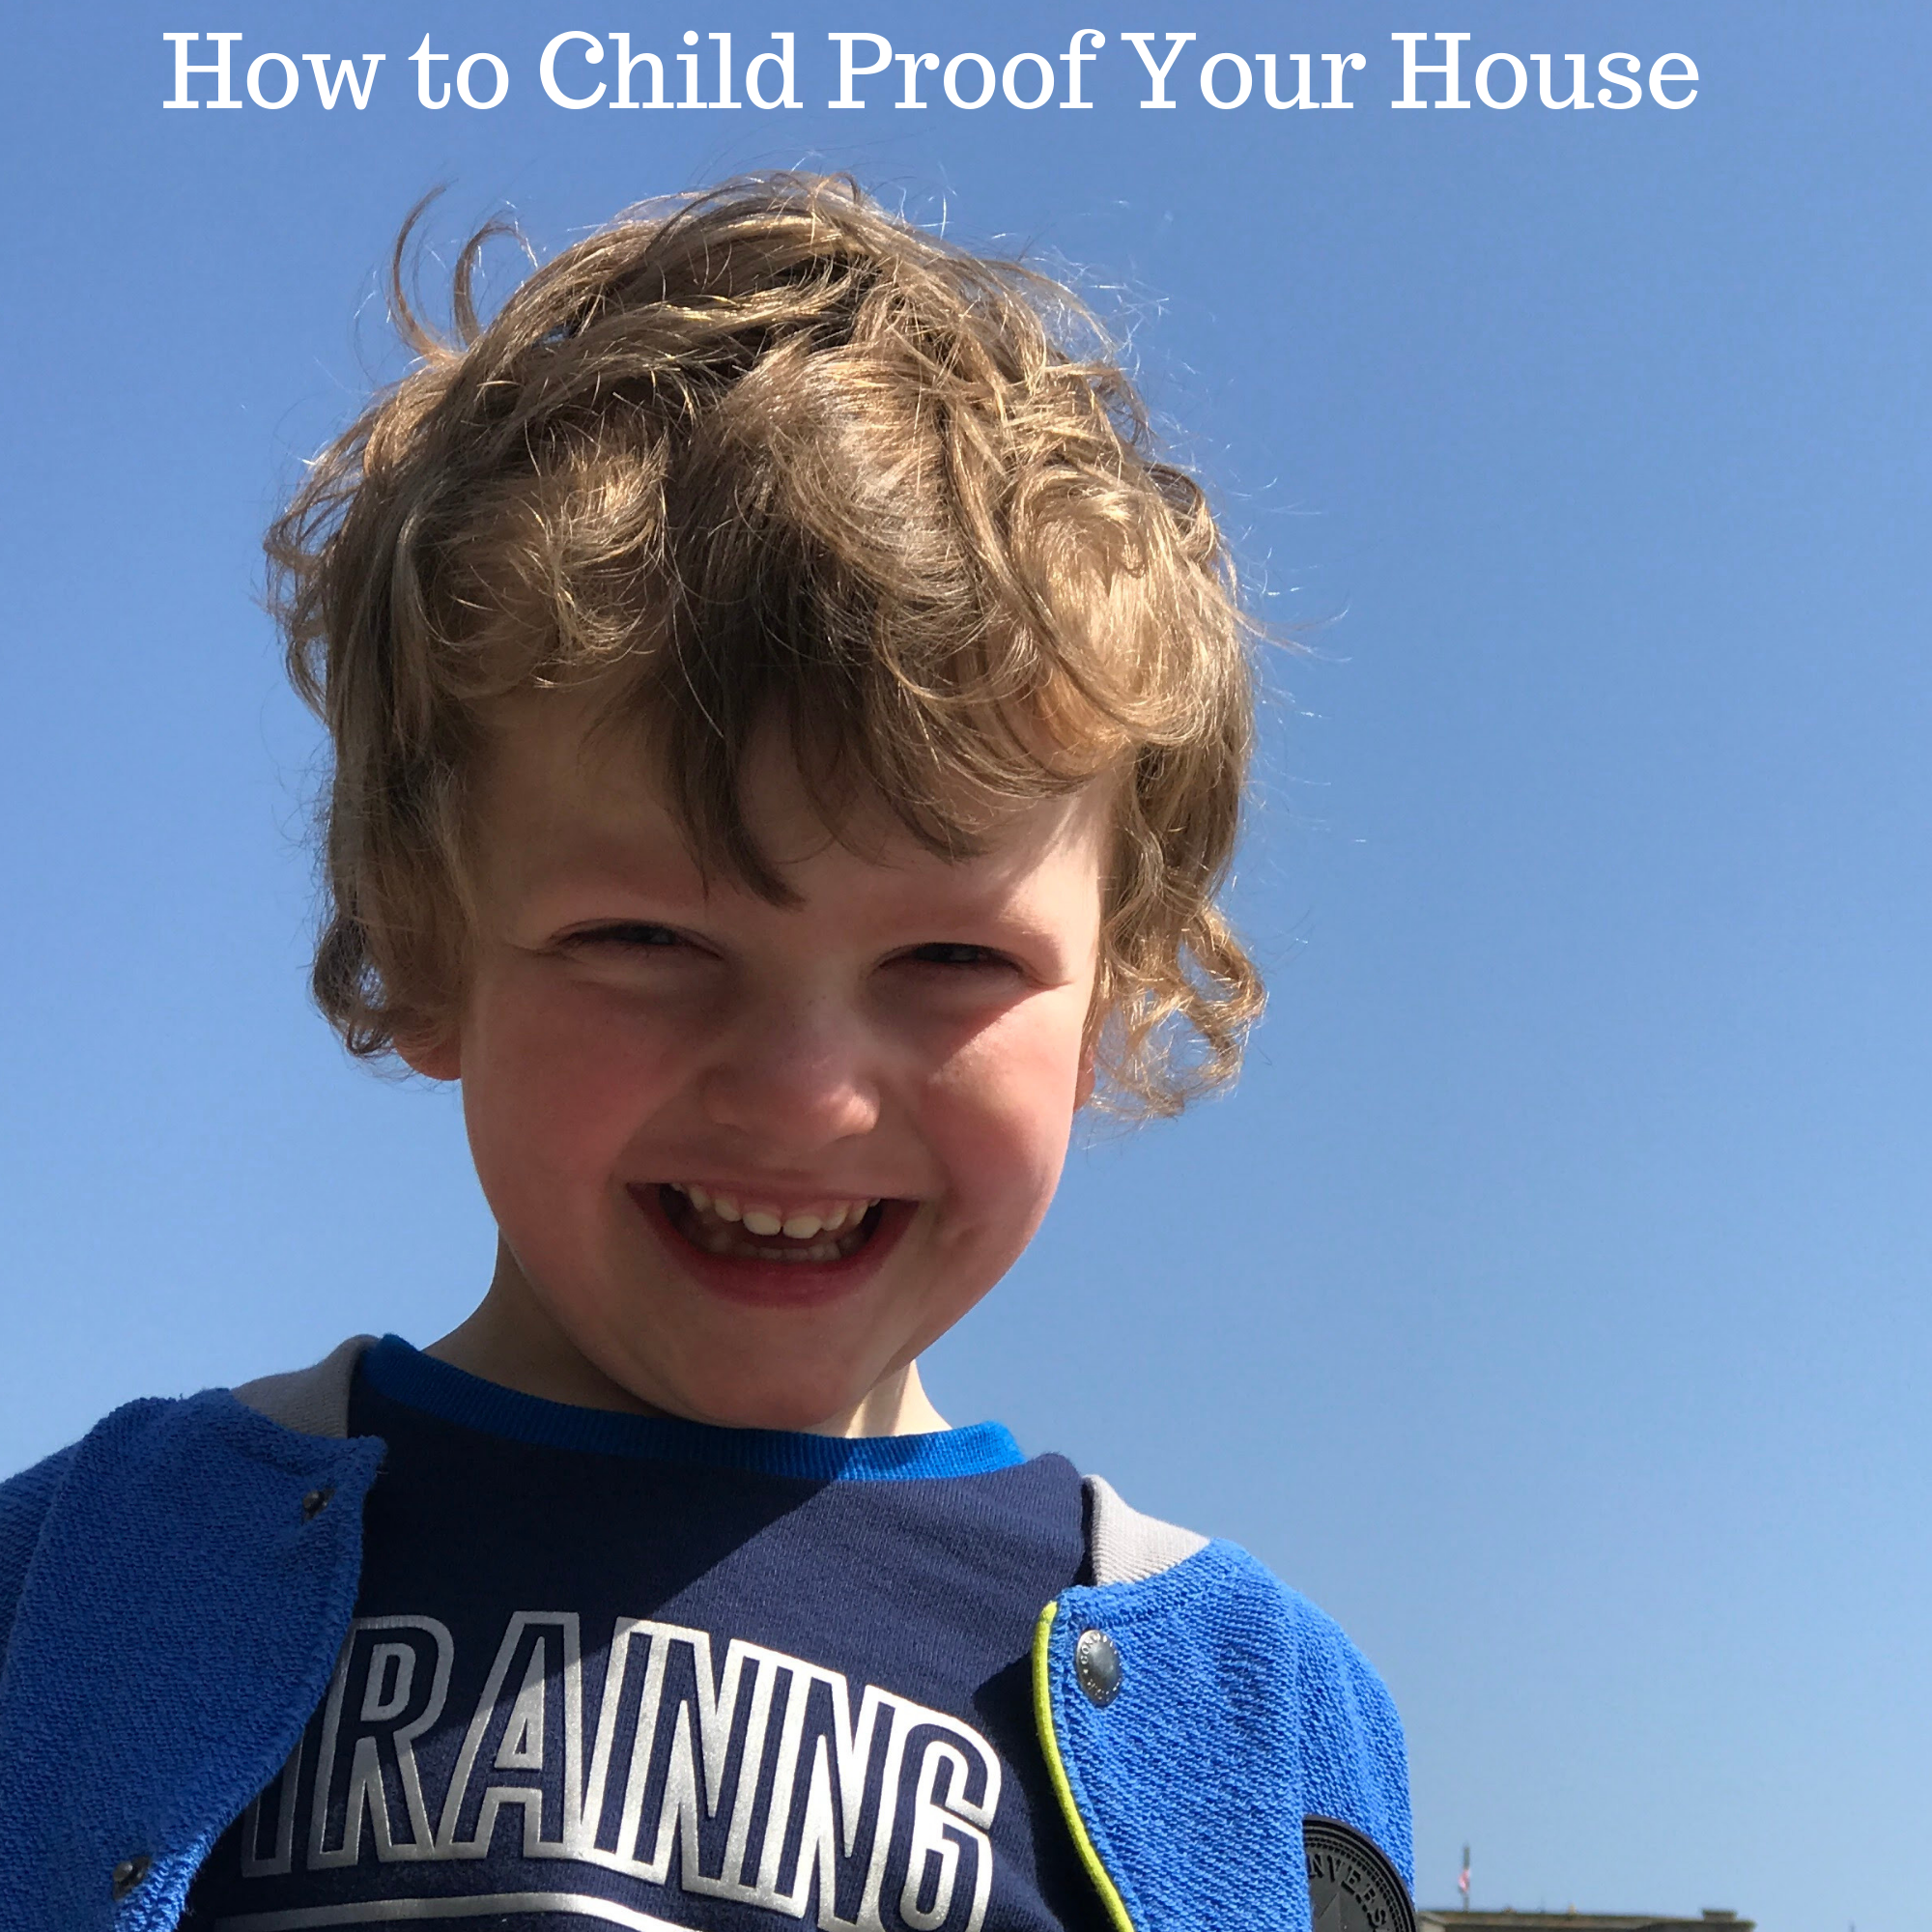 How to Child Proof Your House